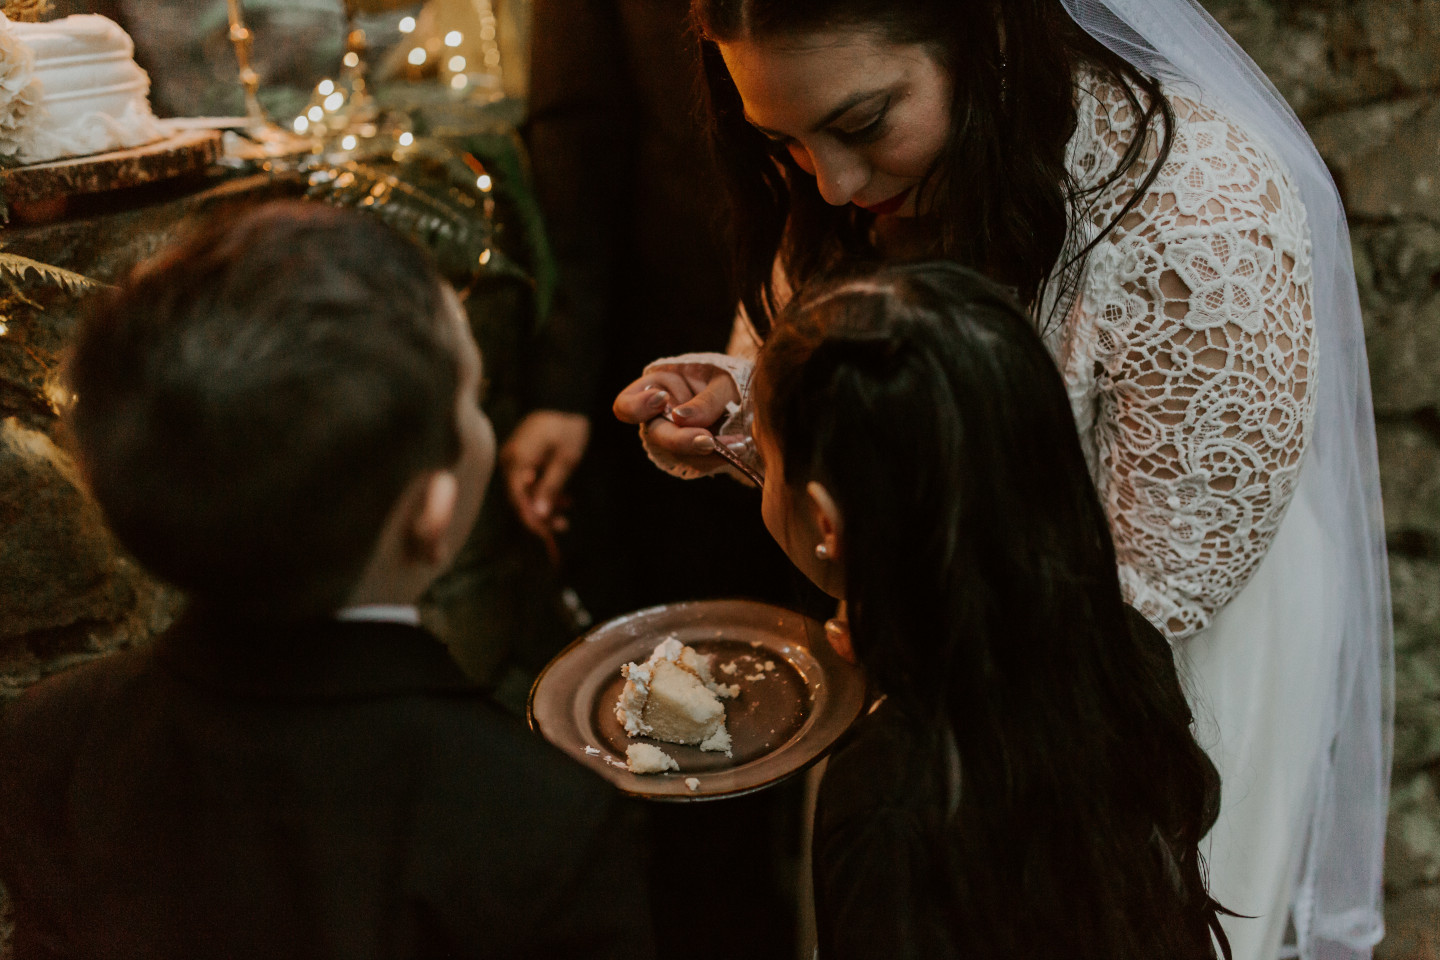 Sarah feeds her children cake at Skamania House, Washington. Elopement photography in Portland Oregon by Sienna Plus Josh.